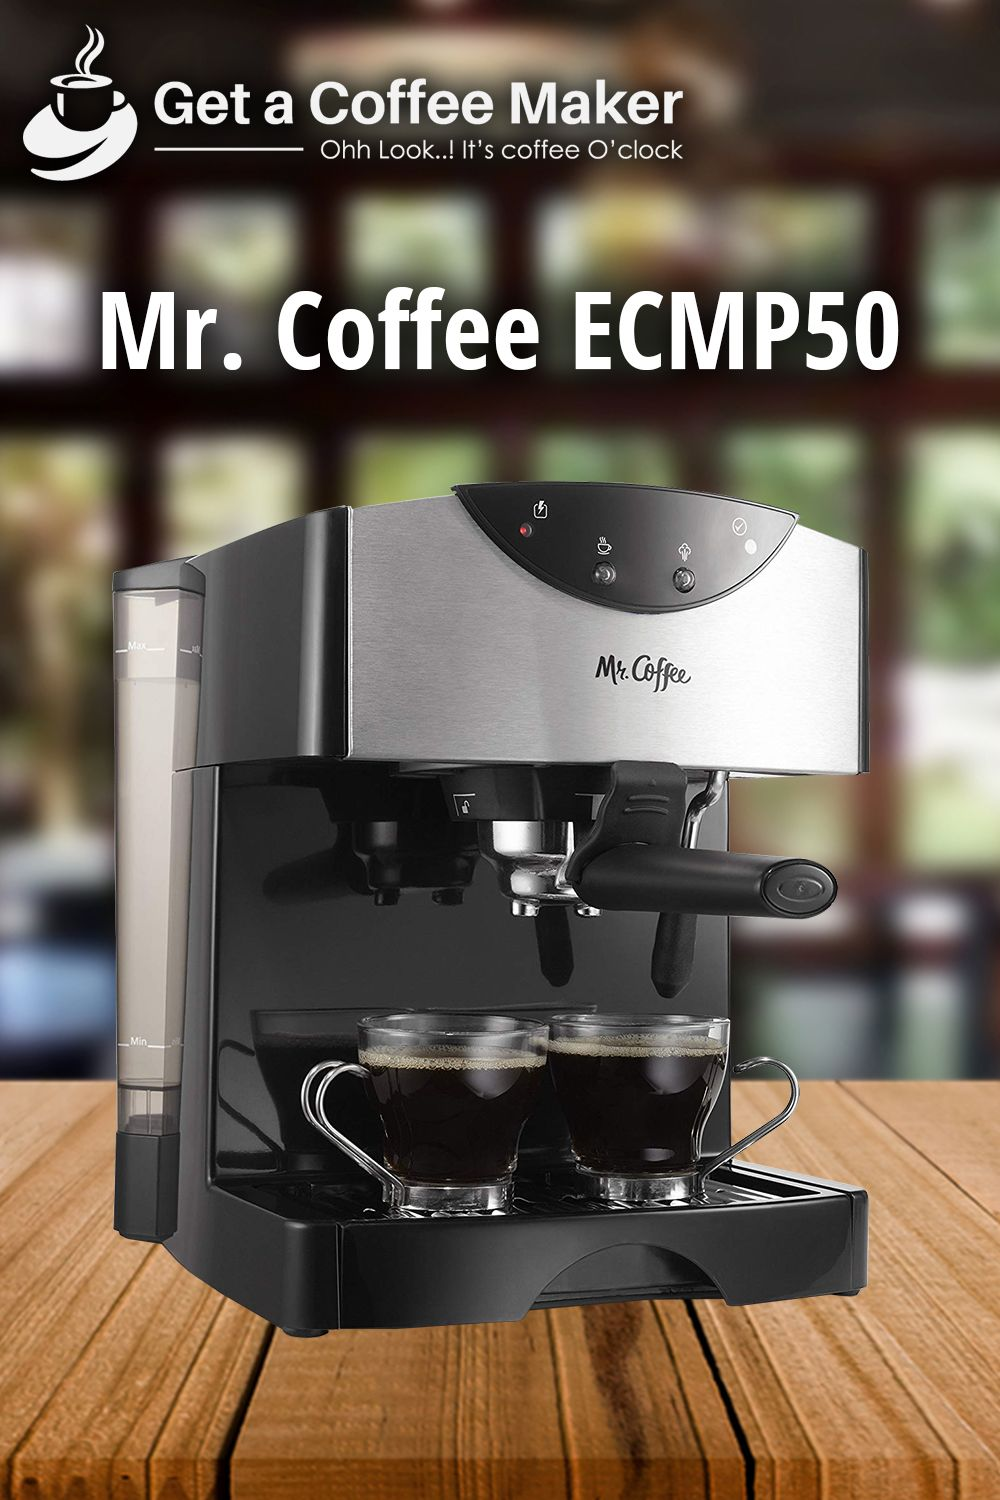 Mr. Coffee ECMP50 Review (With images) Coffee, Cheap